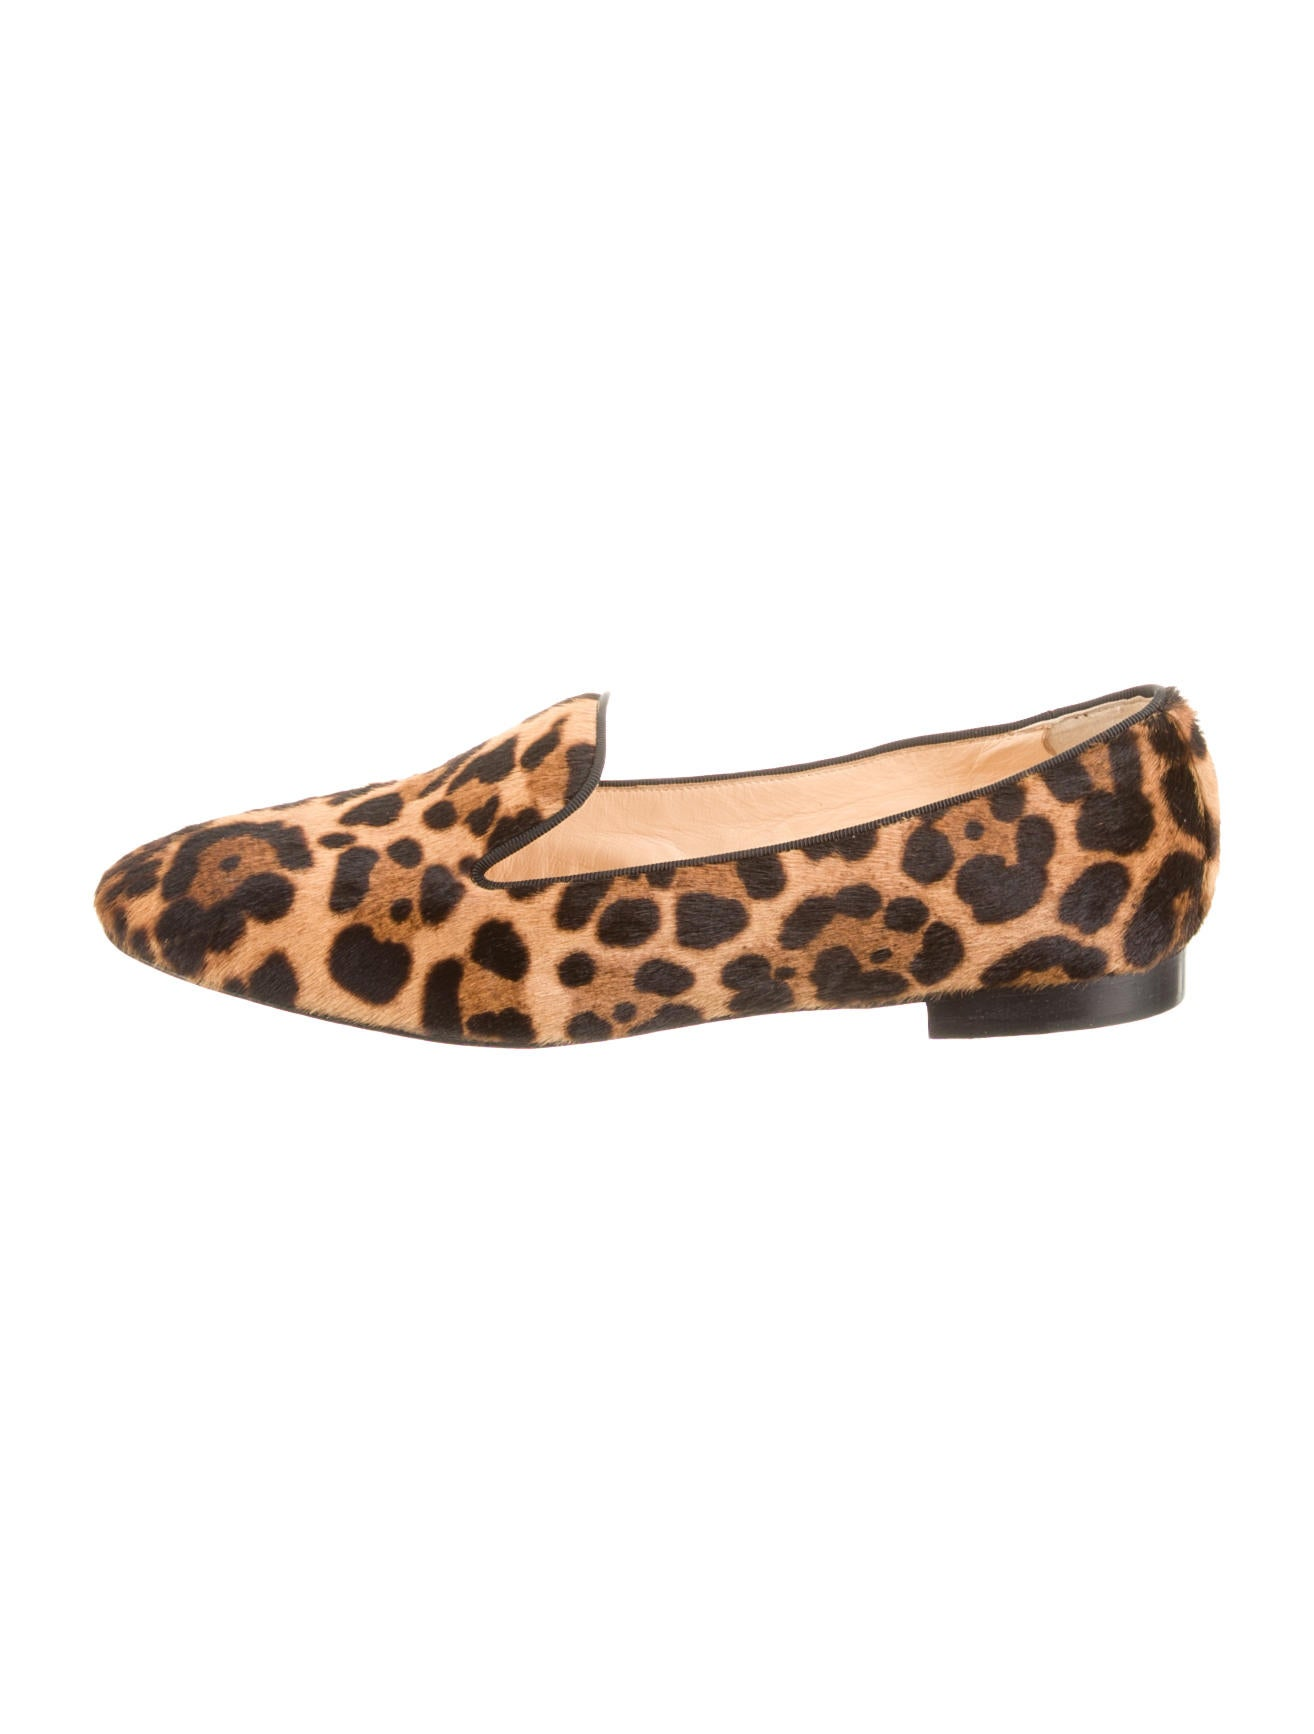 shoes with spikes for men - christian louboutin ponyhair round-toe loafers, christian ...